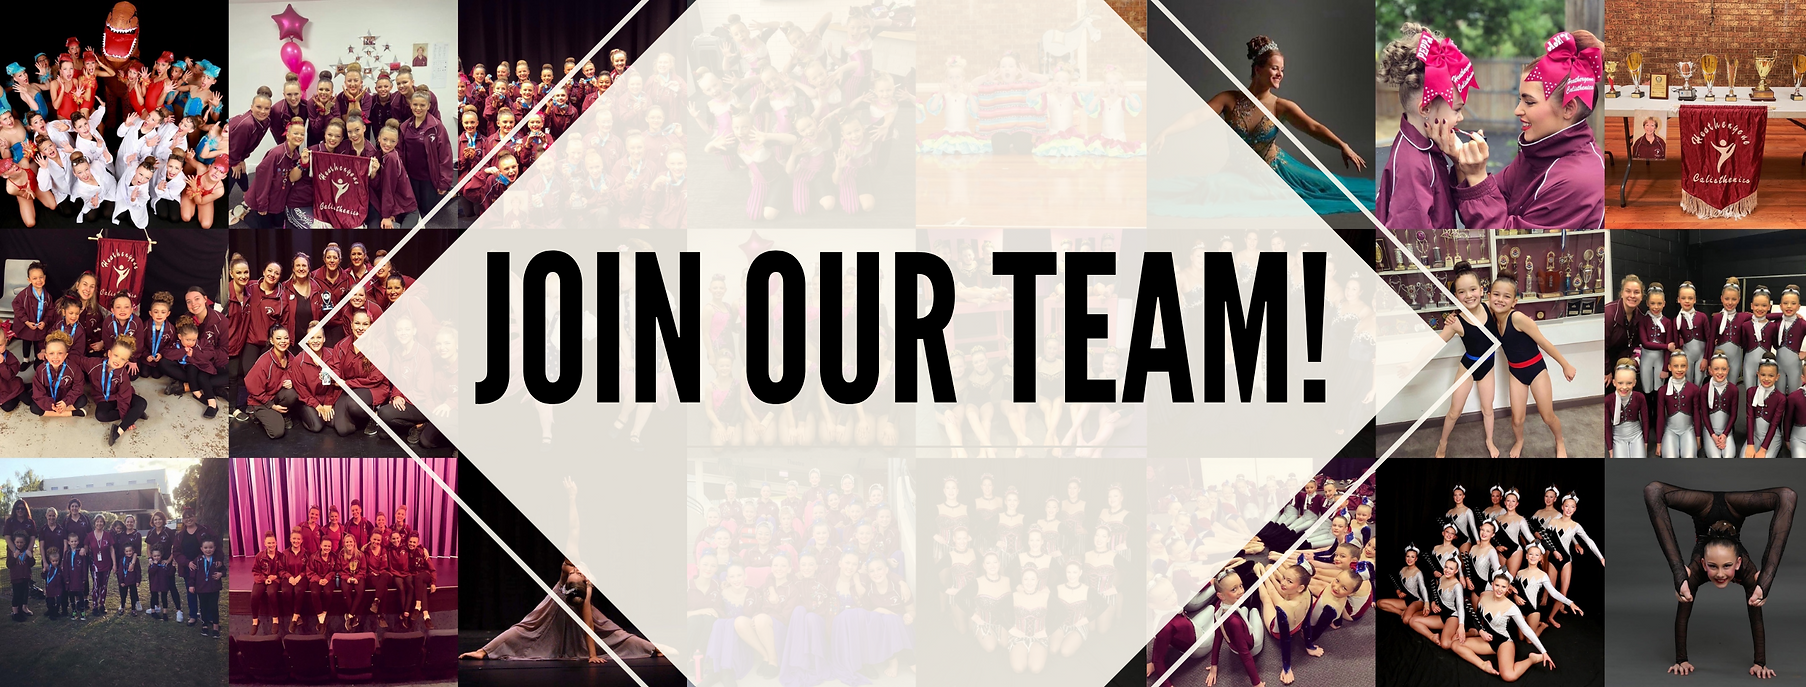 Copy of JOIN OUR TEAM!.png